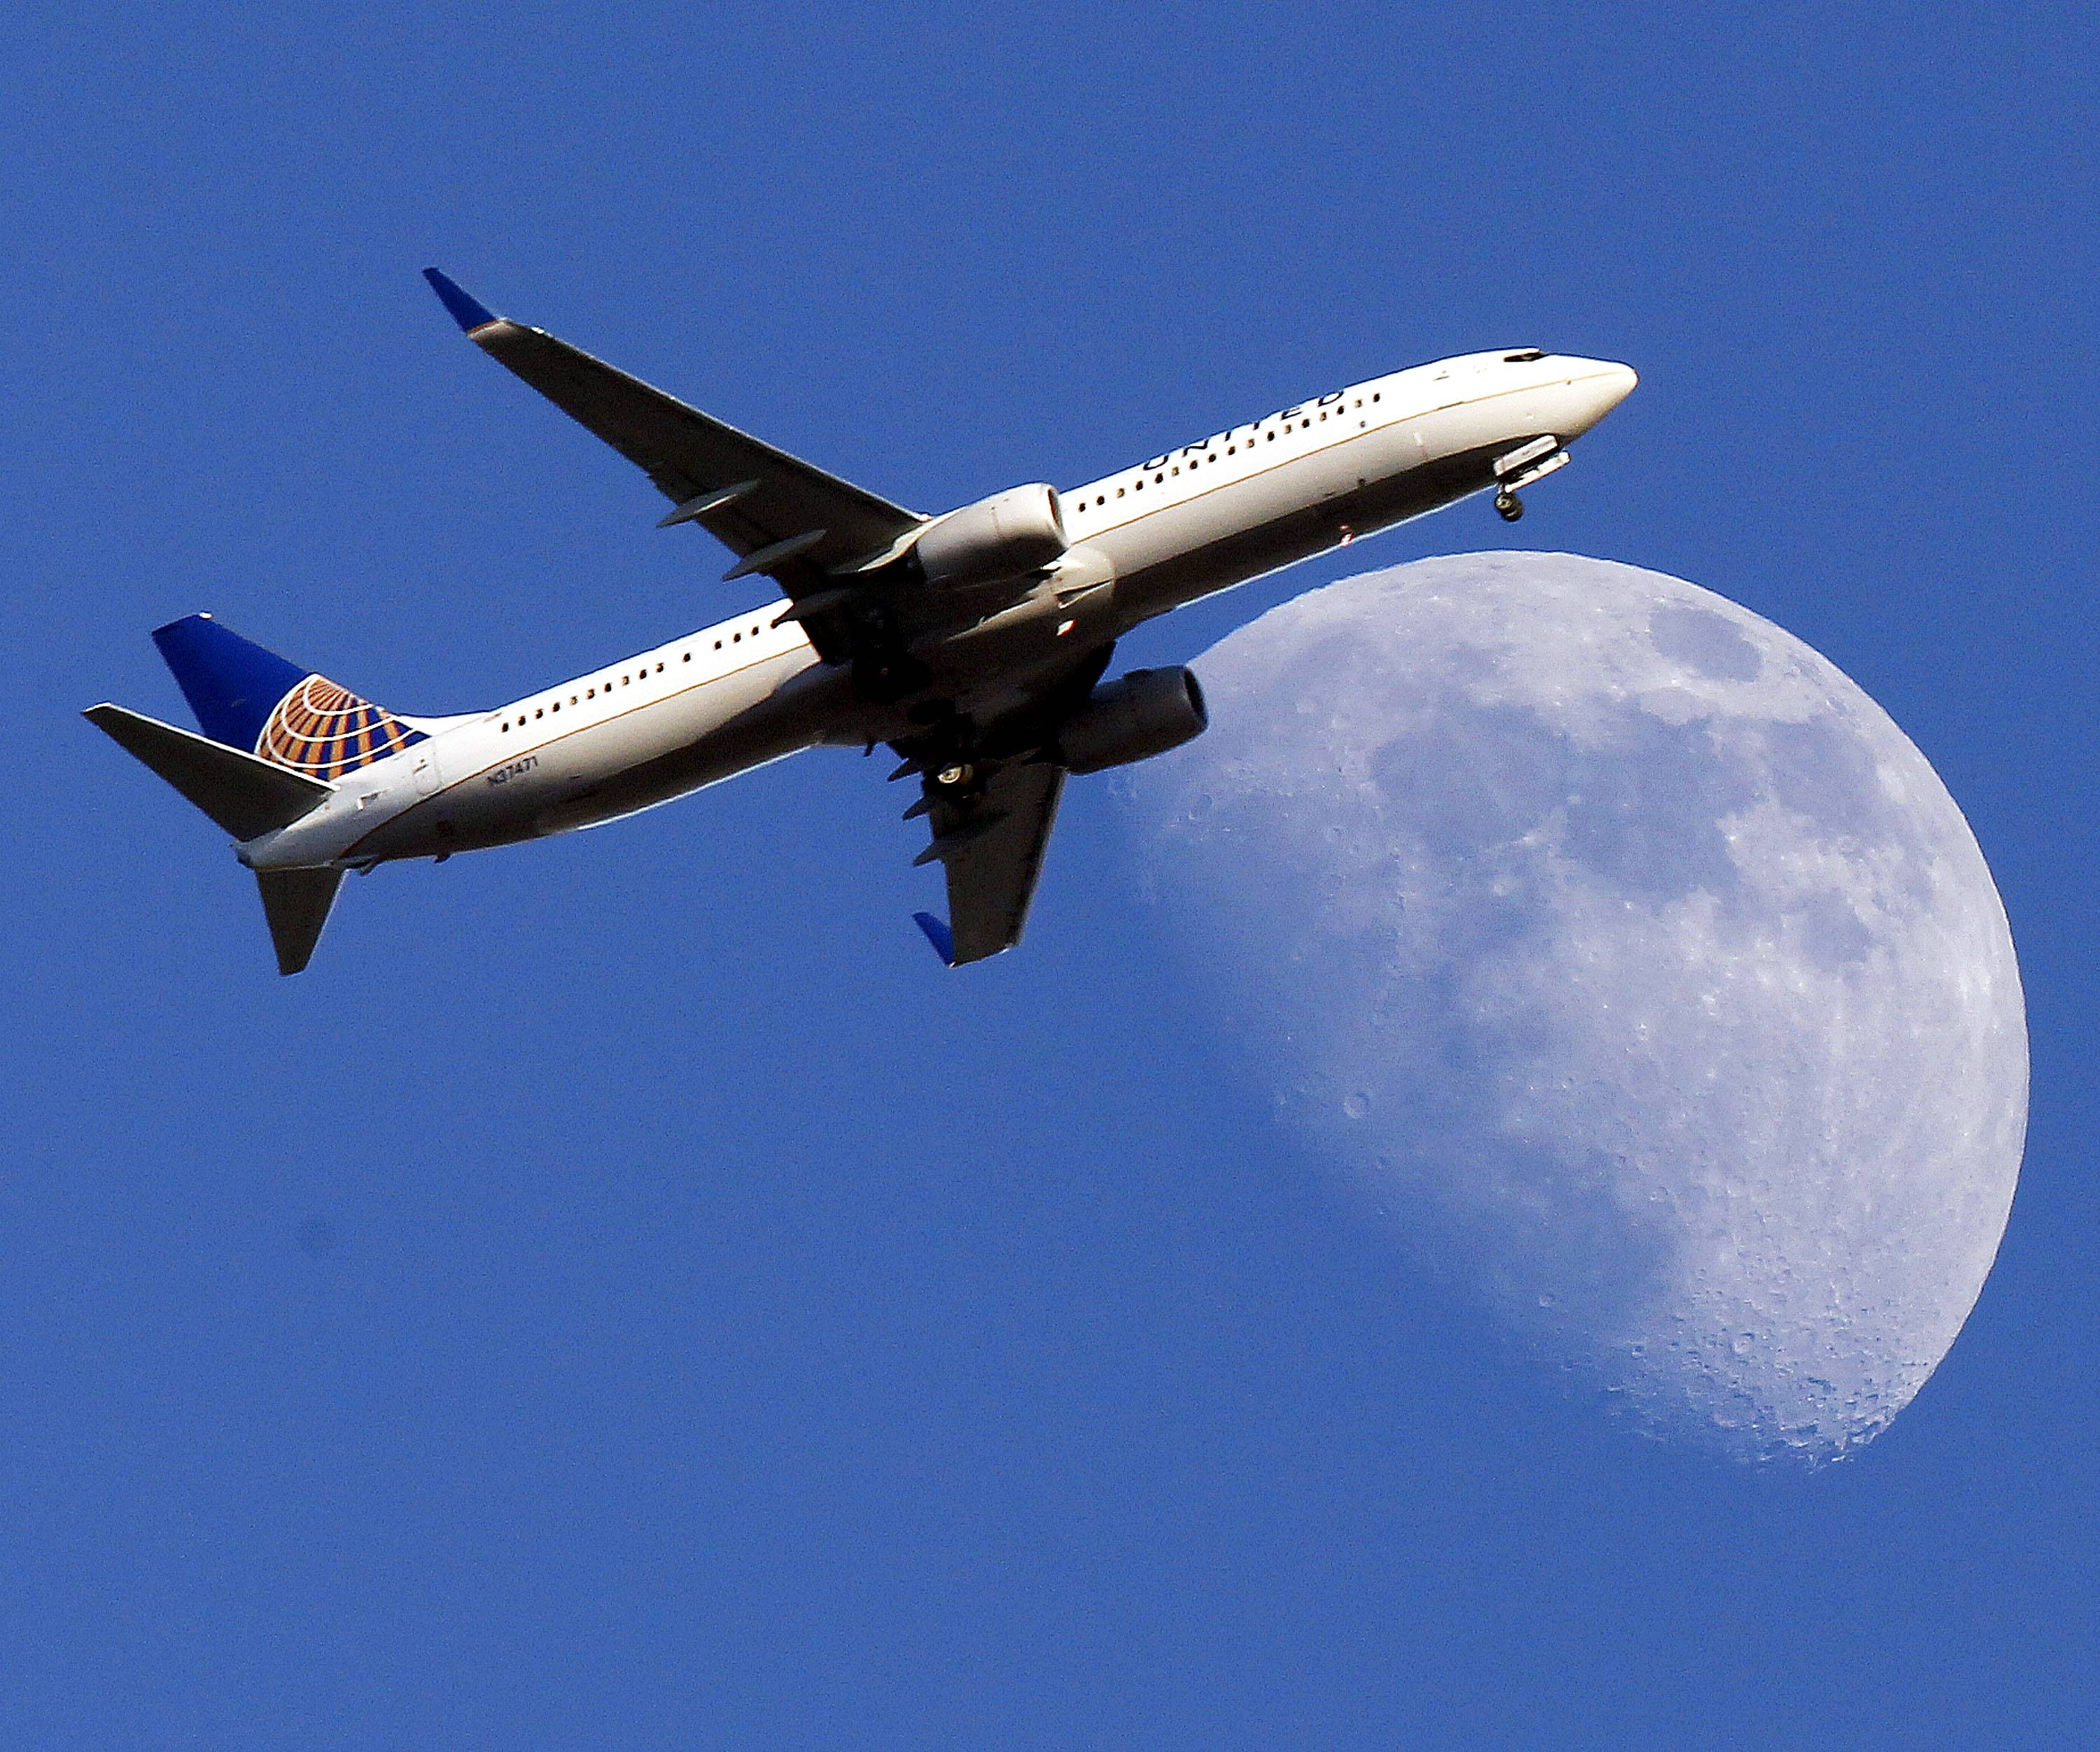 A United Airlines jet plane landing at Los Angeles International Airport. United lost $609 million during the first three months of this year.